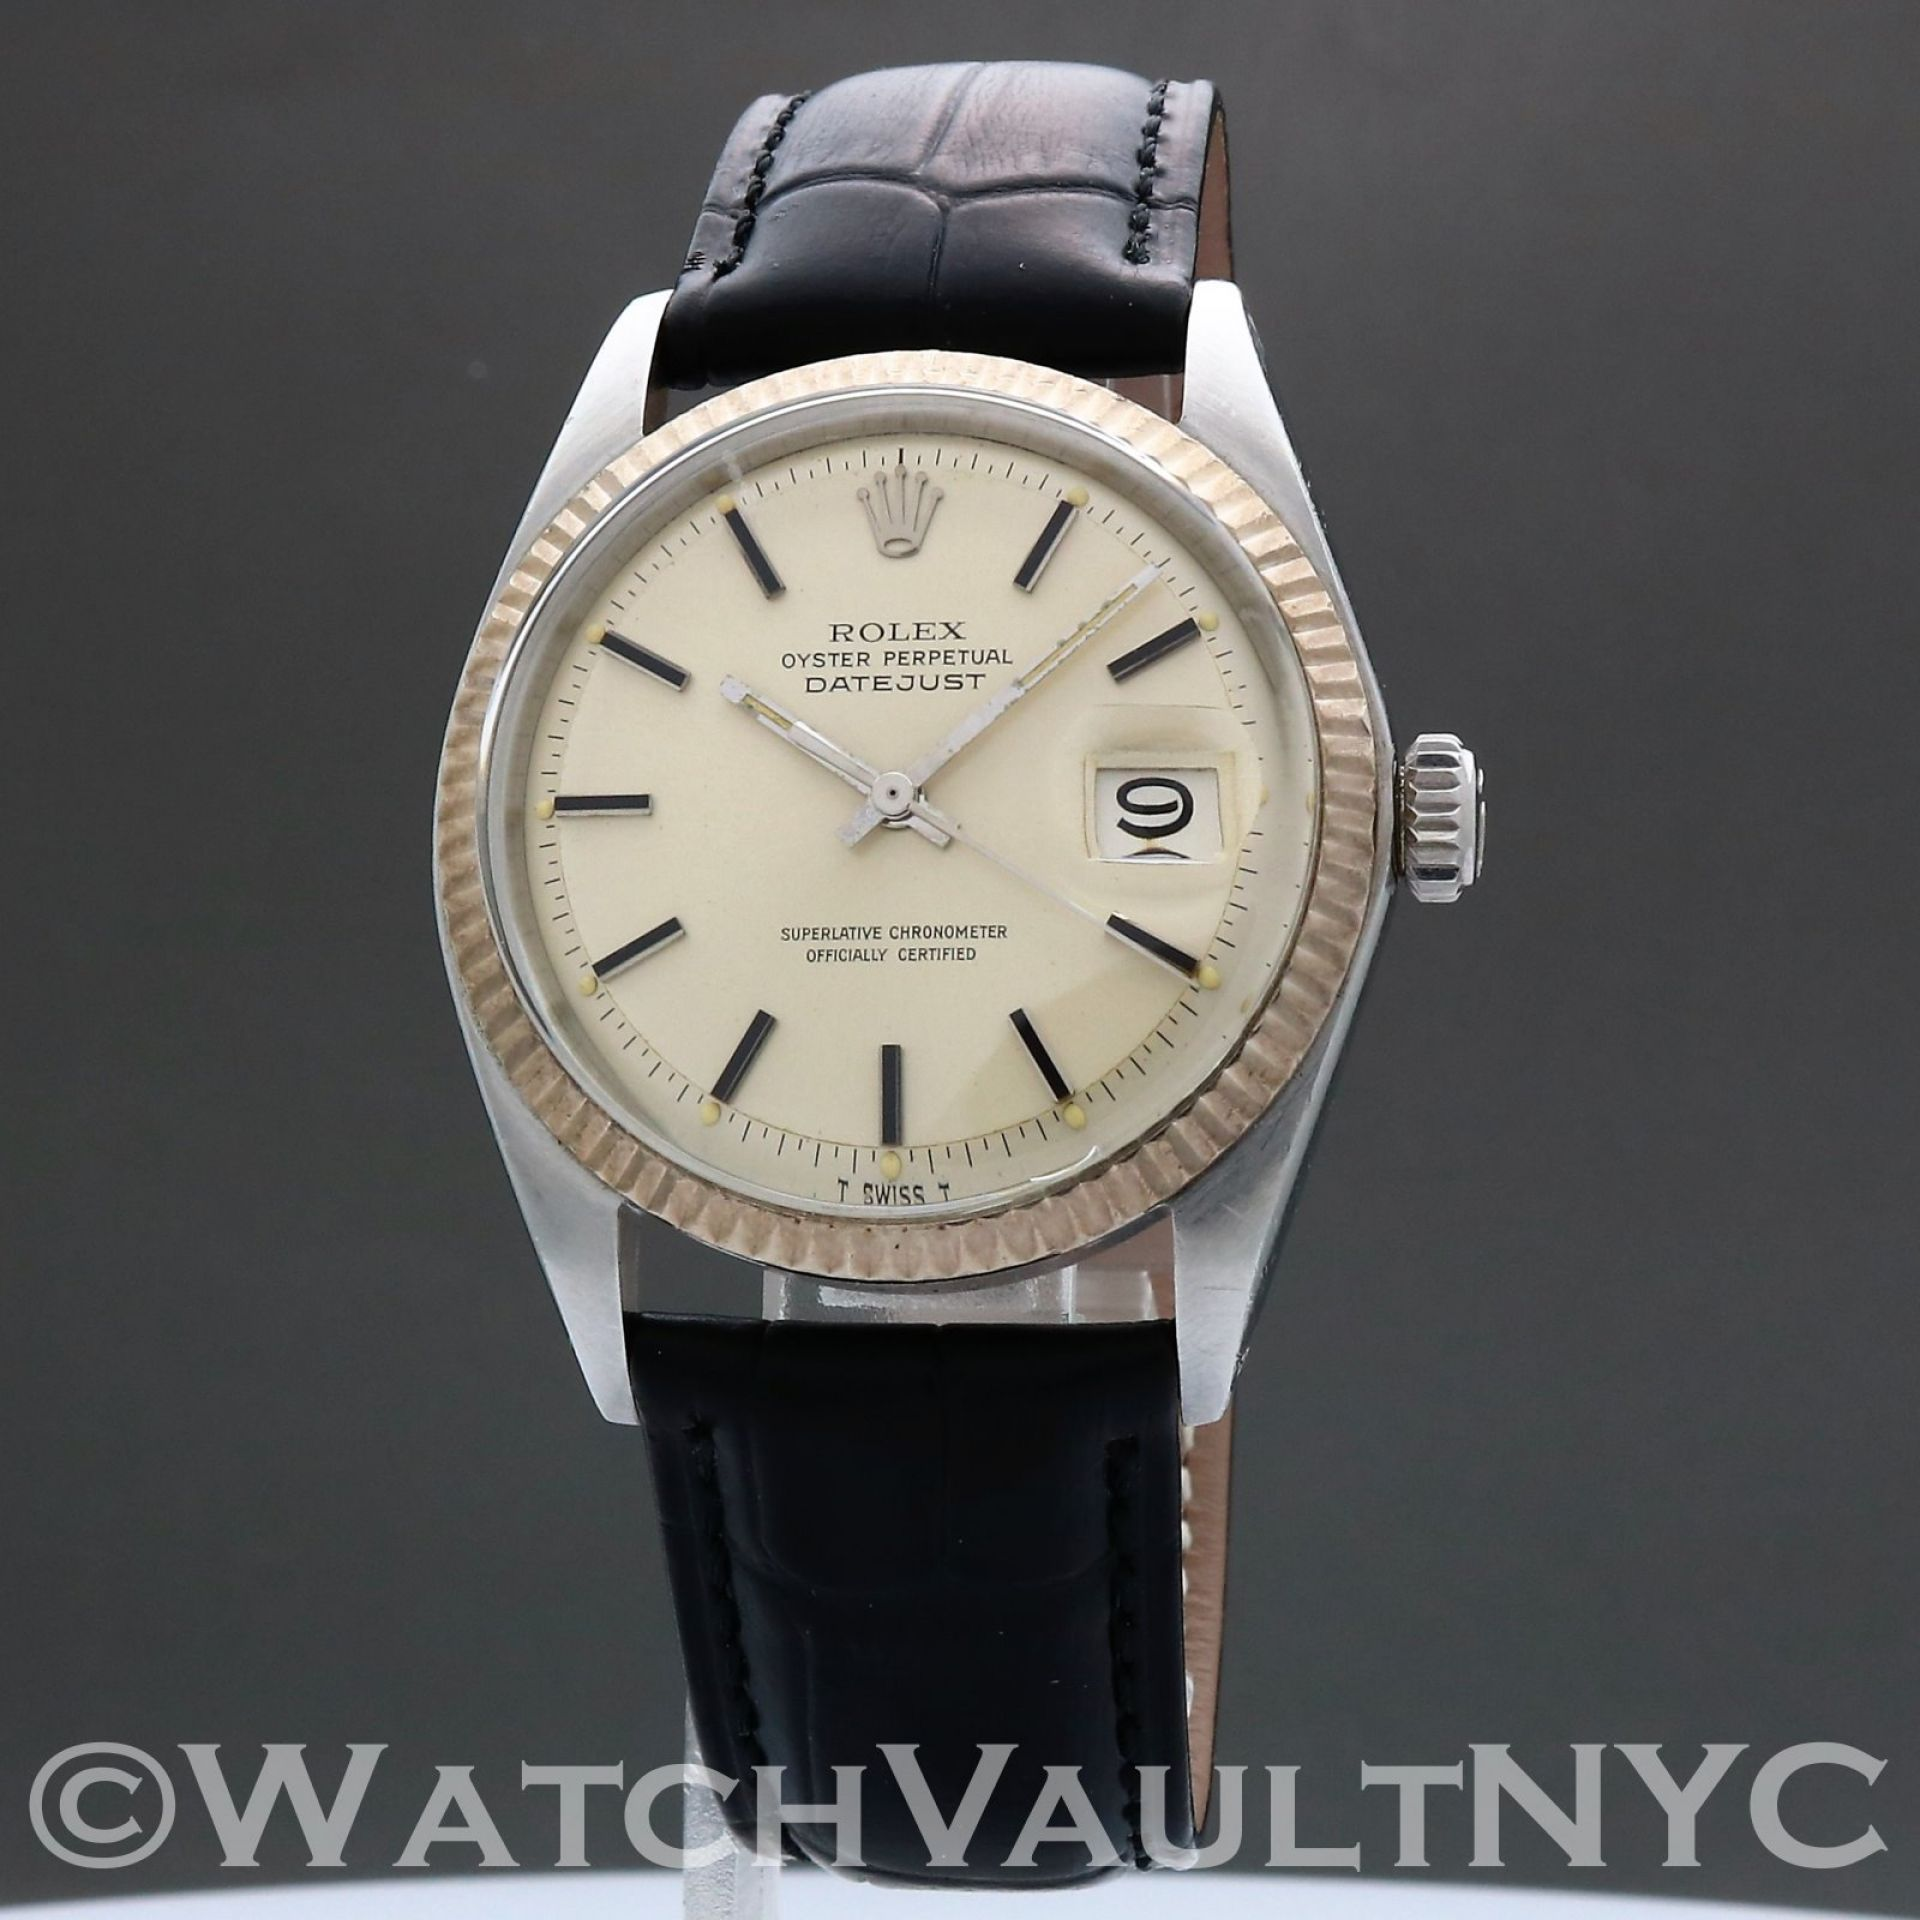 Rolex Oyster Perpetual Datejust 1601 1973 Vintage 36mm Auto RL307